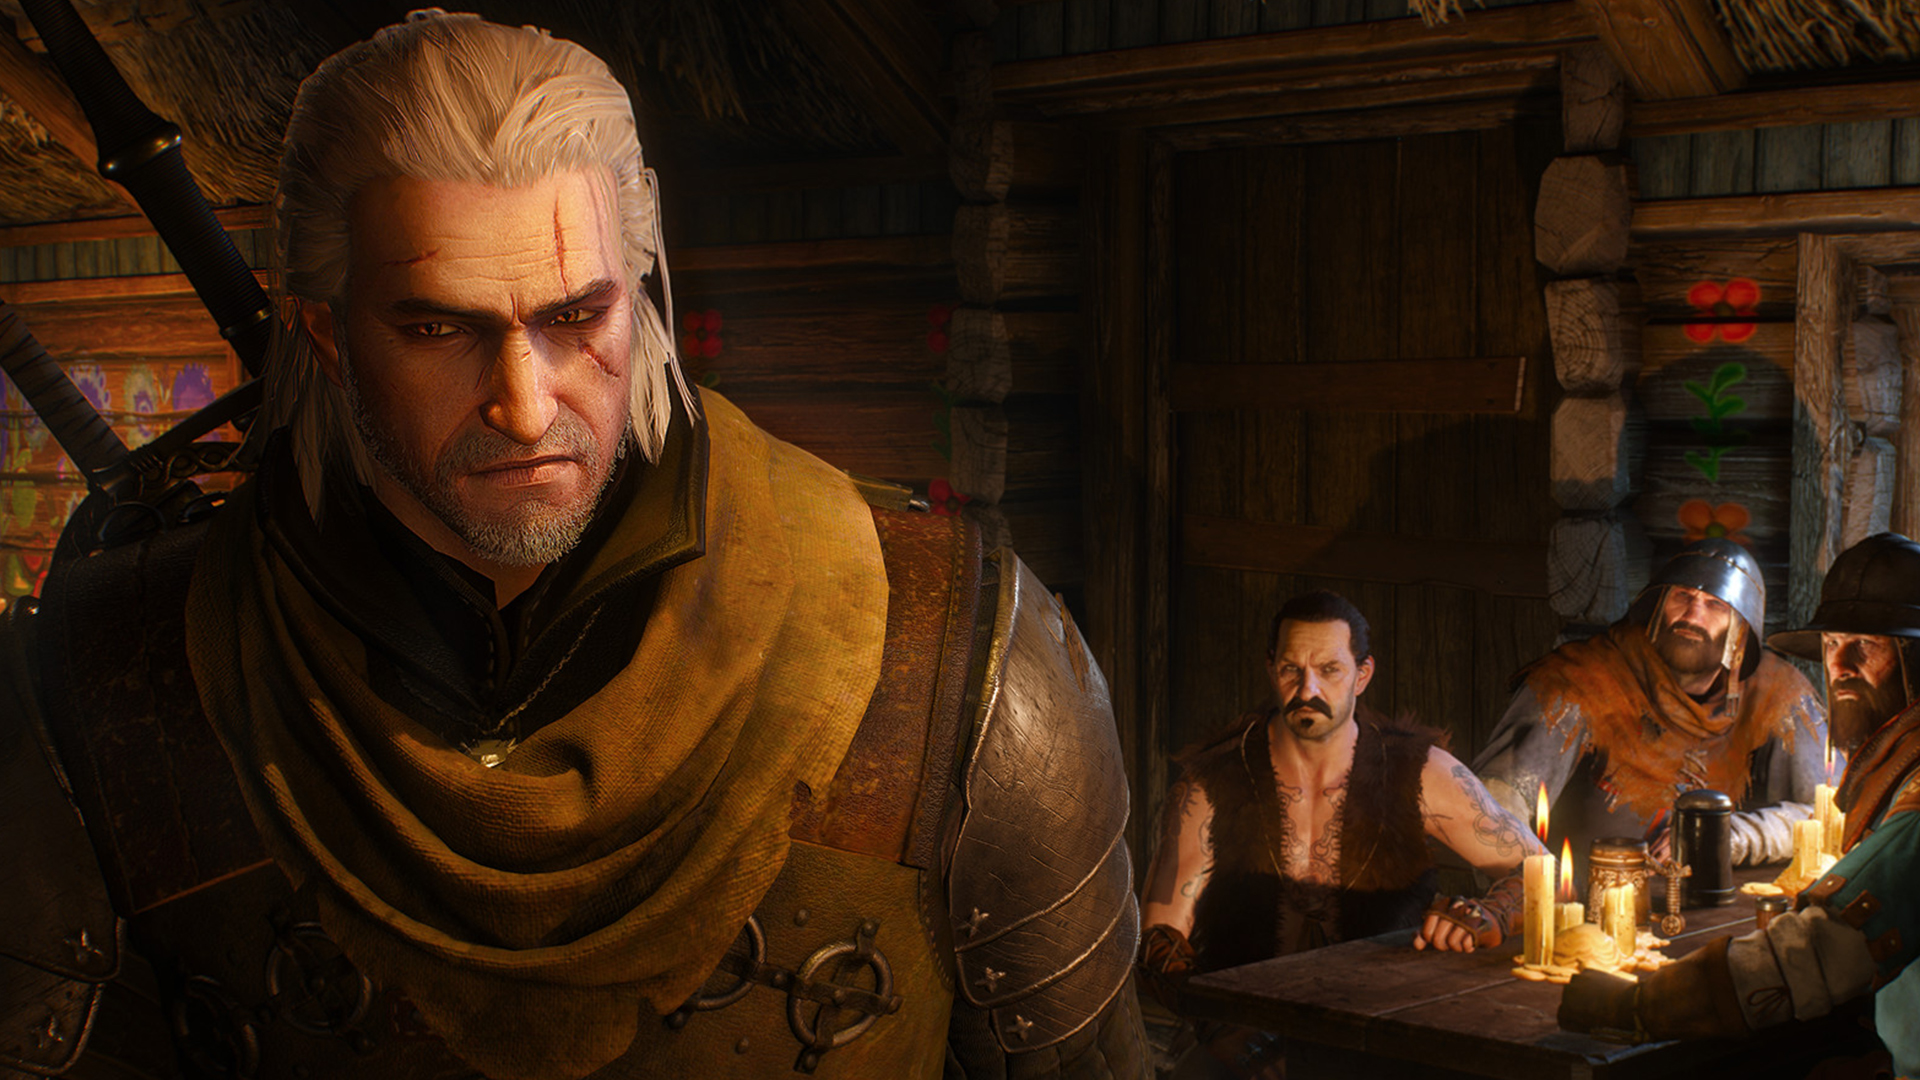 The Witcher 3 is on track to sell more in 2019 than it did